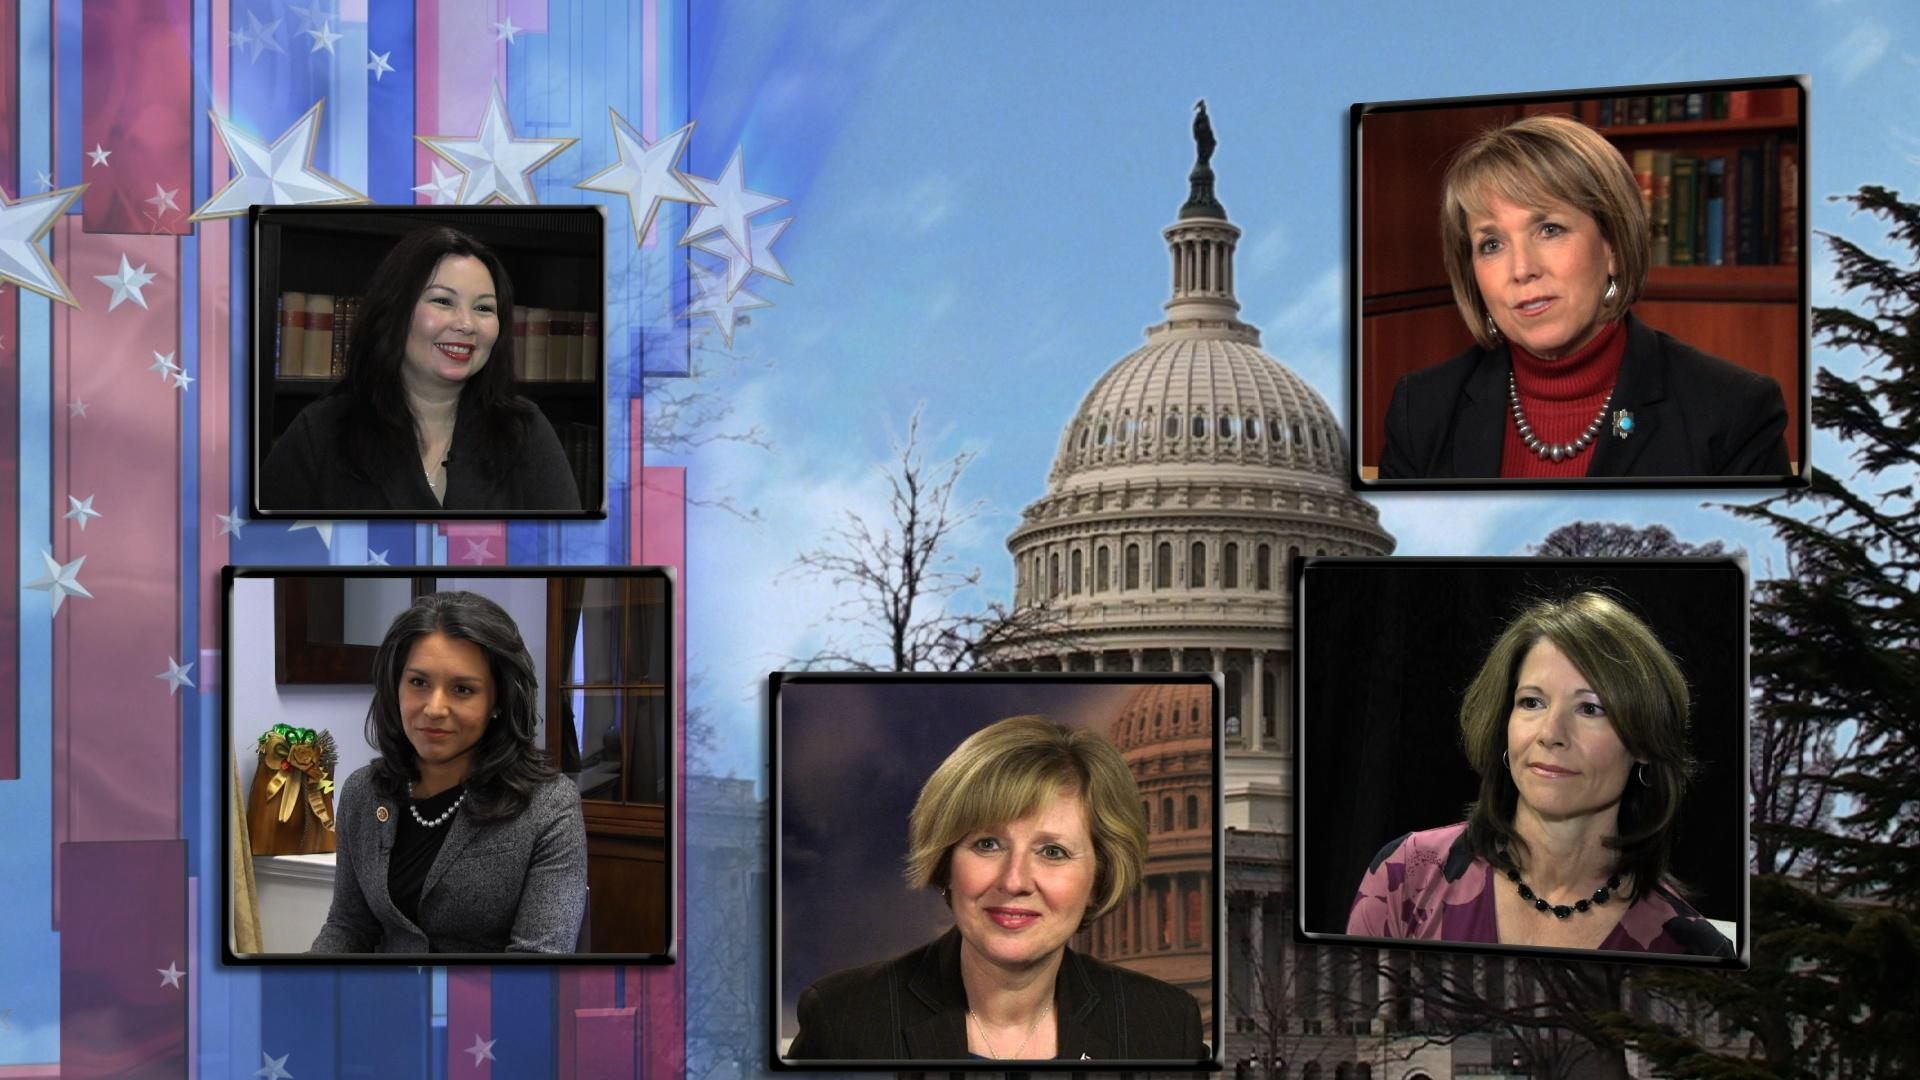 Introducing the New Powerful Women in Congress